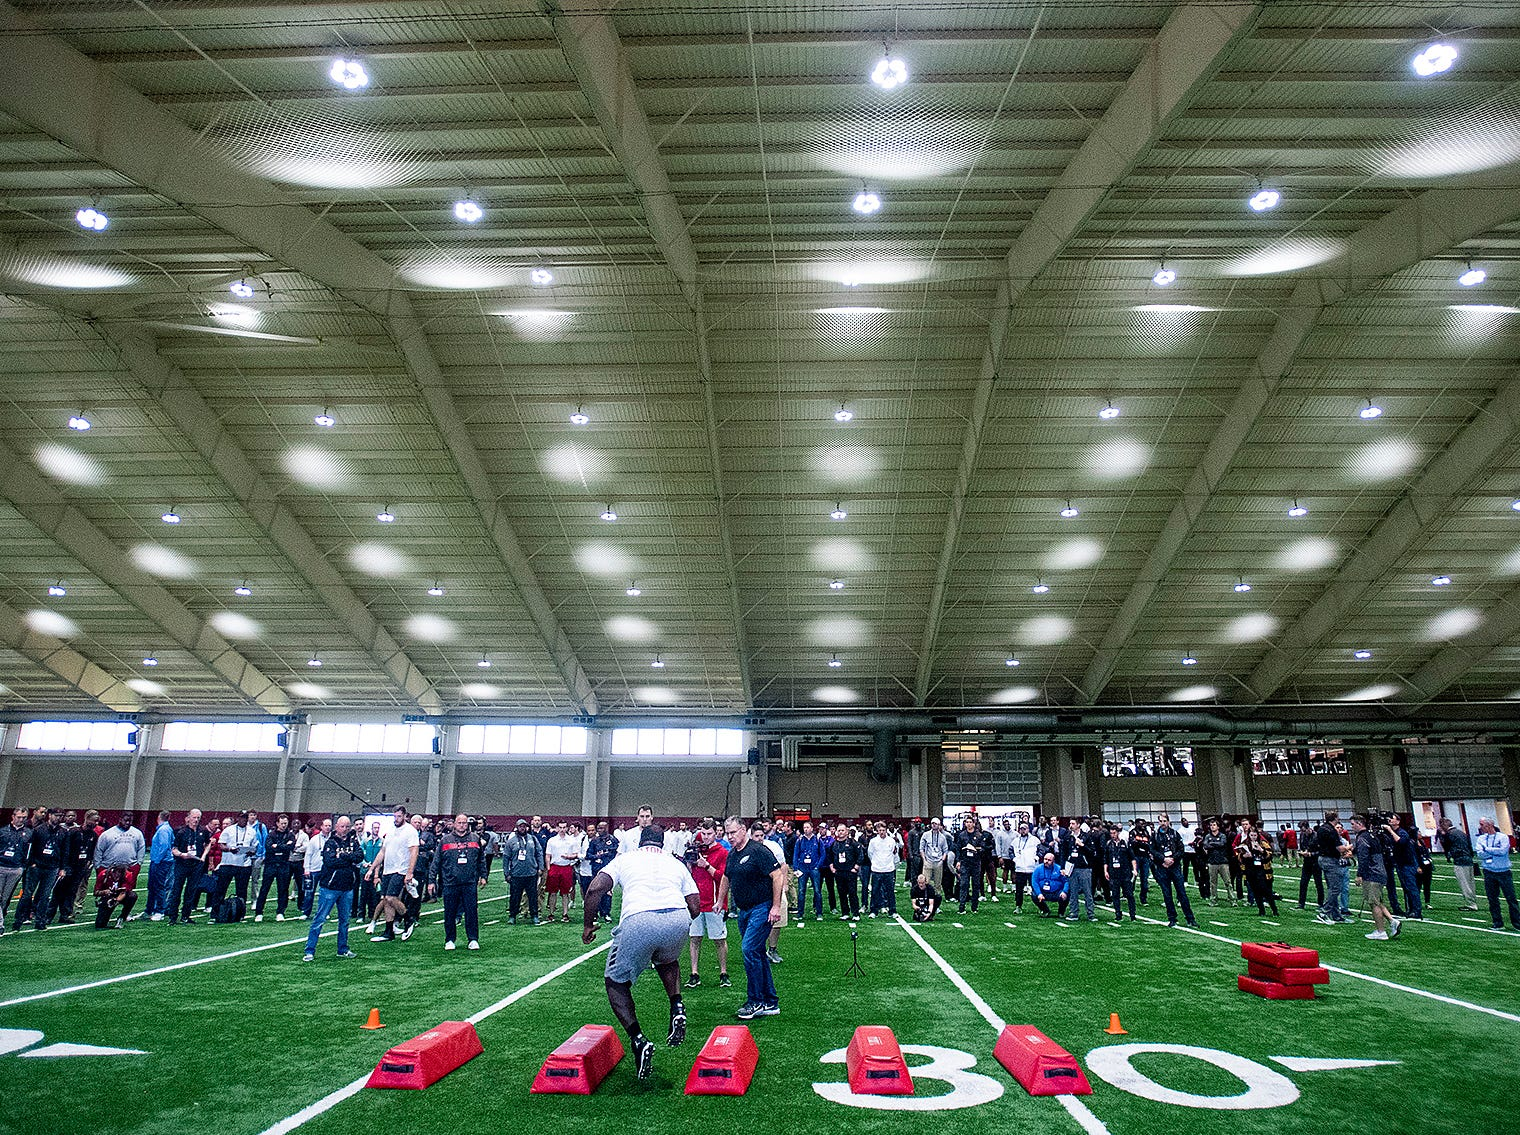 NFL scouts watch workouts during Pro Day on the University of Alabama campus in Tuscaloosa, Ala., on Tuesday March 19, 2019.